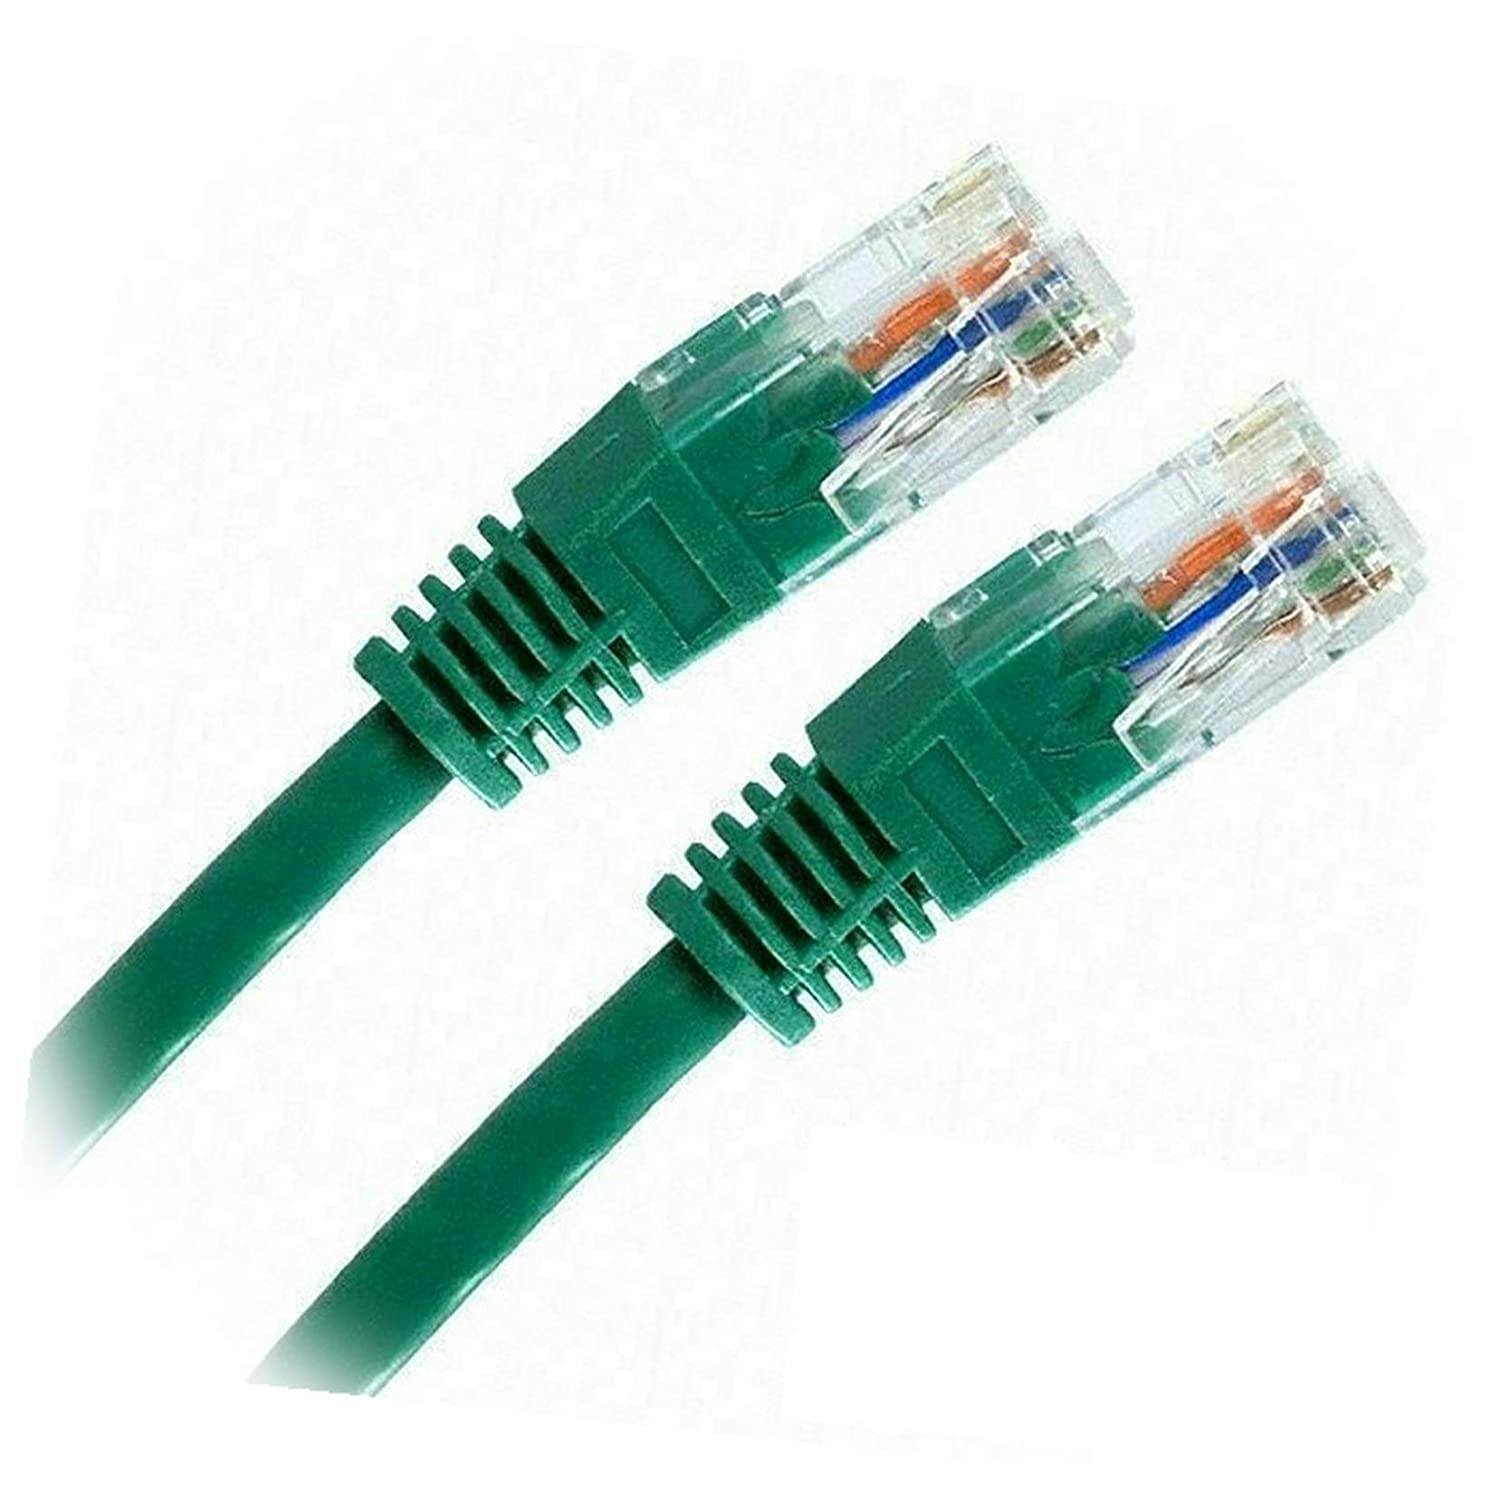 New 10 Pack Lot - 10ft Ethernet Orleans Mall Network Popular popular C LAN Patch Router Cable